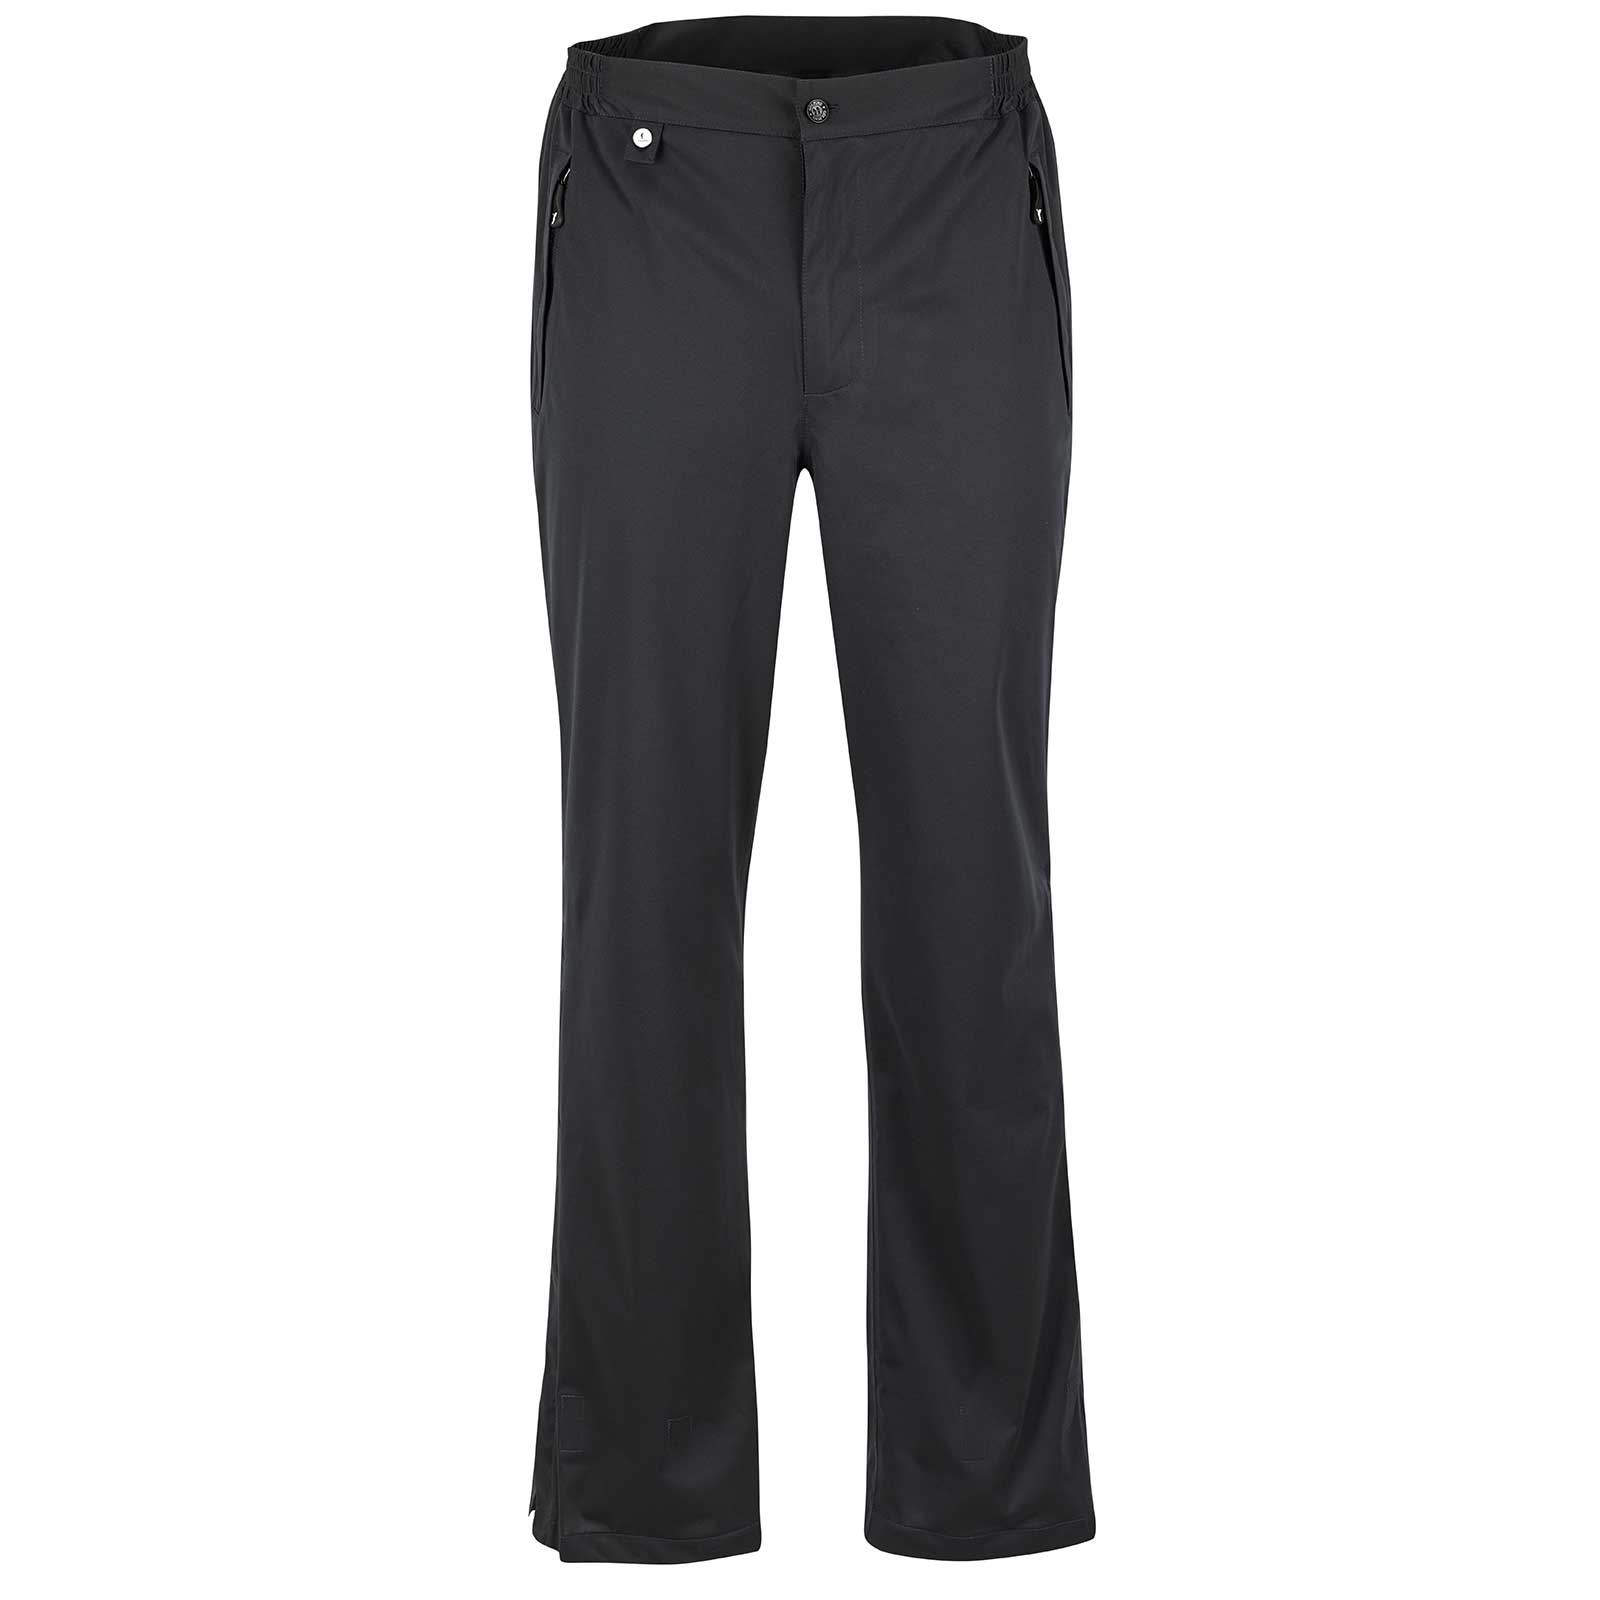 Water- and windproof men's lightweight rain trousers